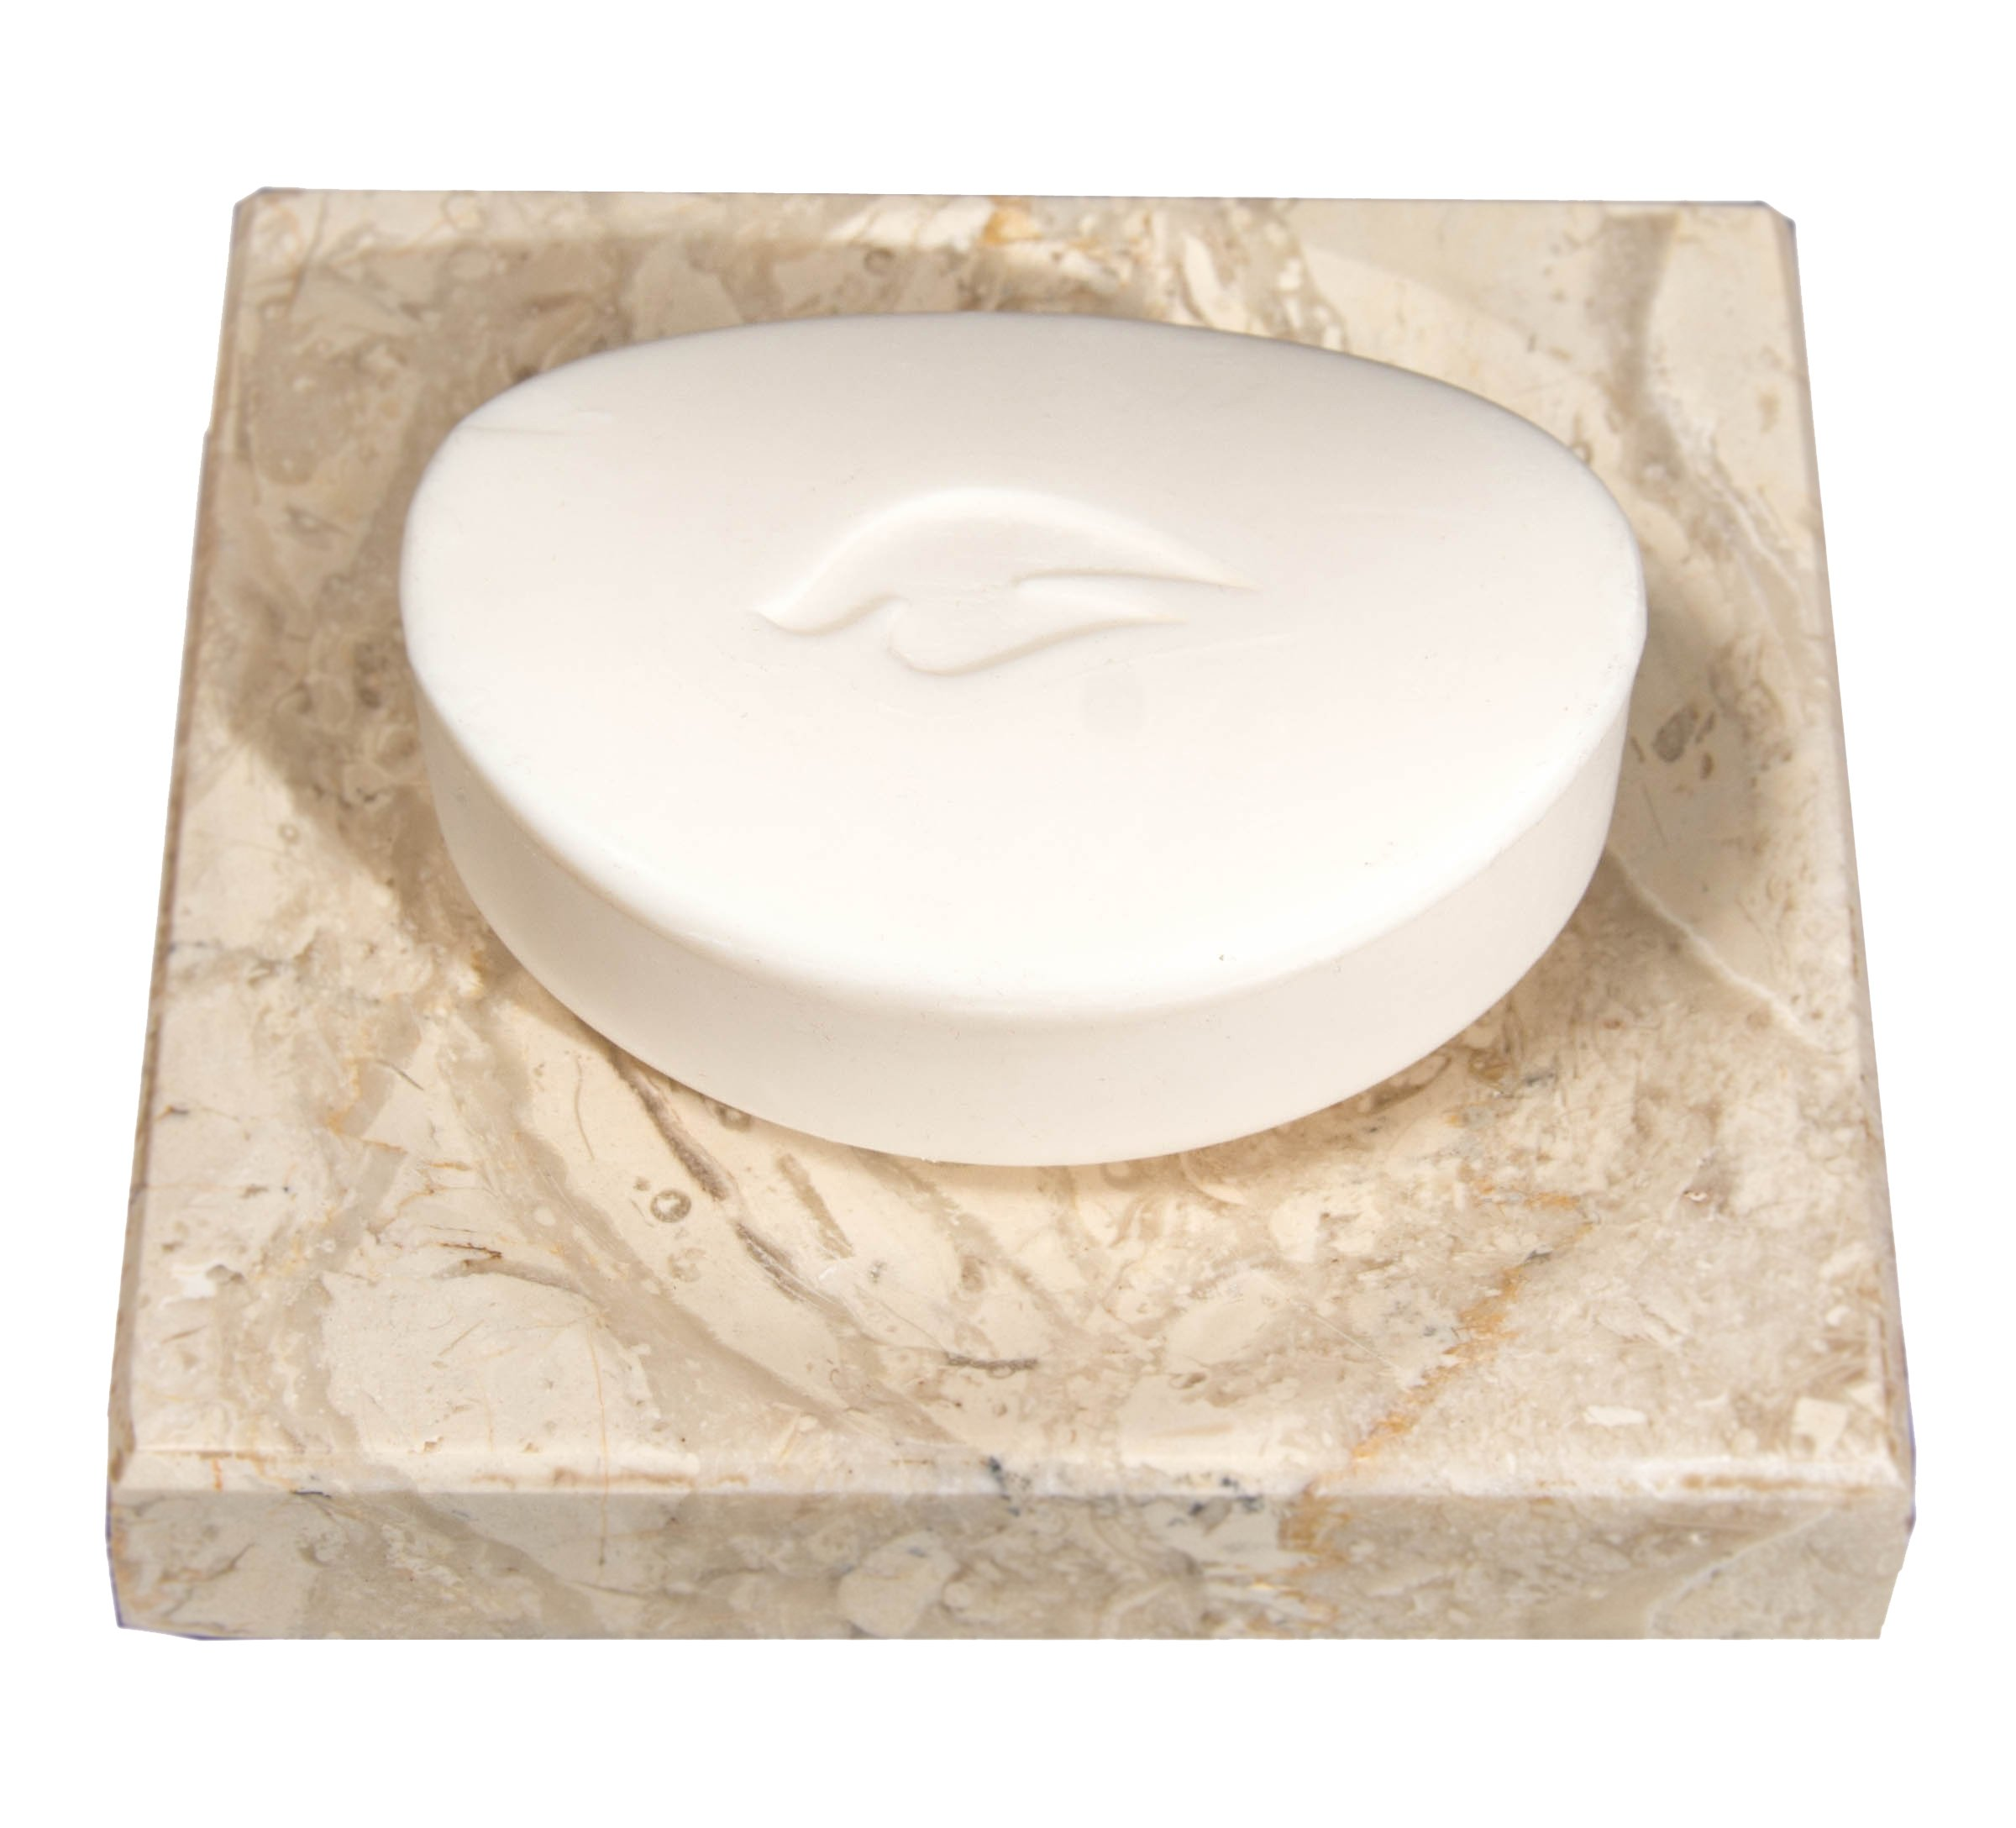 CraftsOfEgypt Beige Marble Soap Dish - Polished and Shiny Marble Dish Holder - Beautifully Crafted Bathroom Accessory